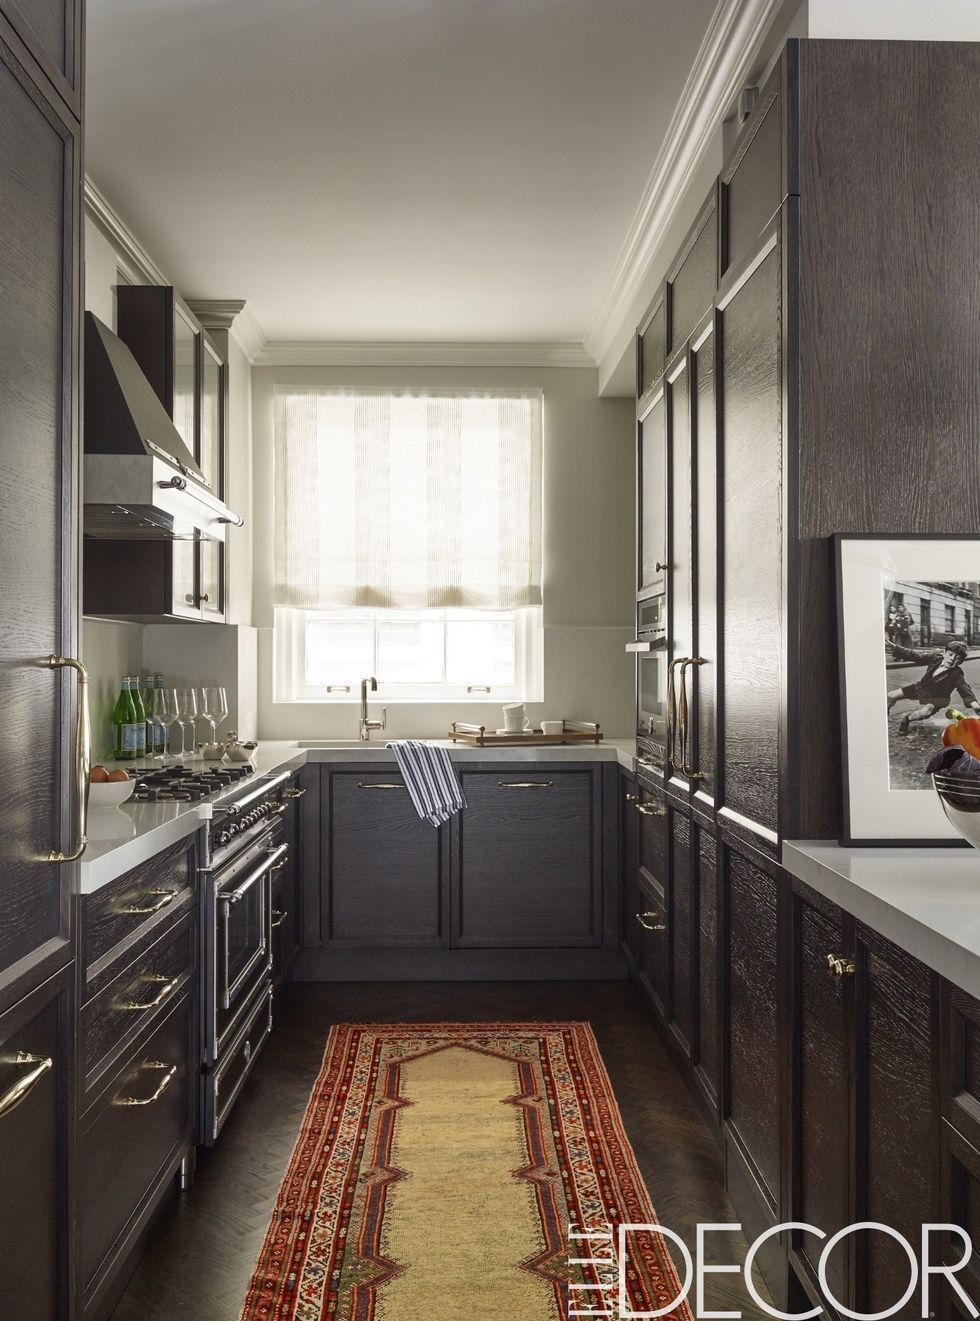 Over 50 ideas for designing small kitchens - decorating small kitchens OMHJFWN